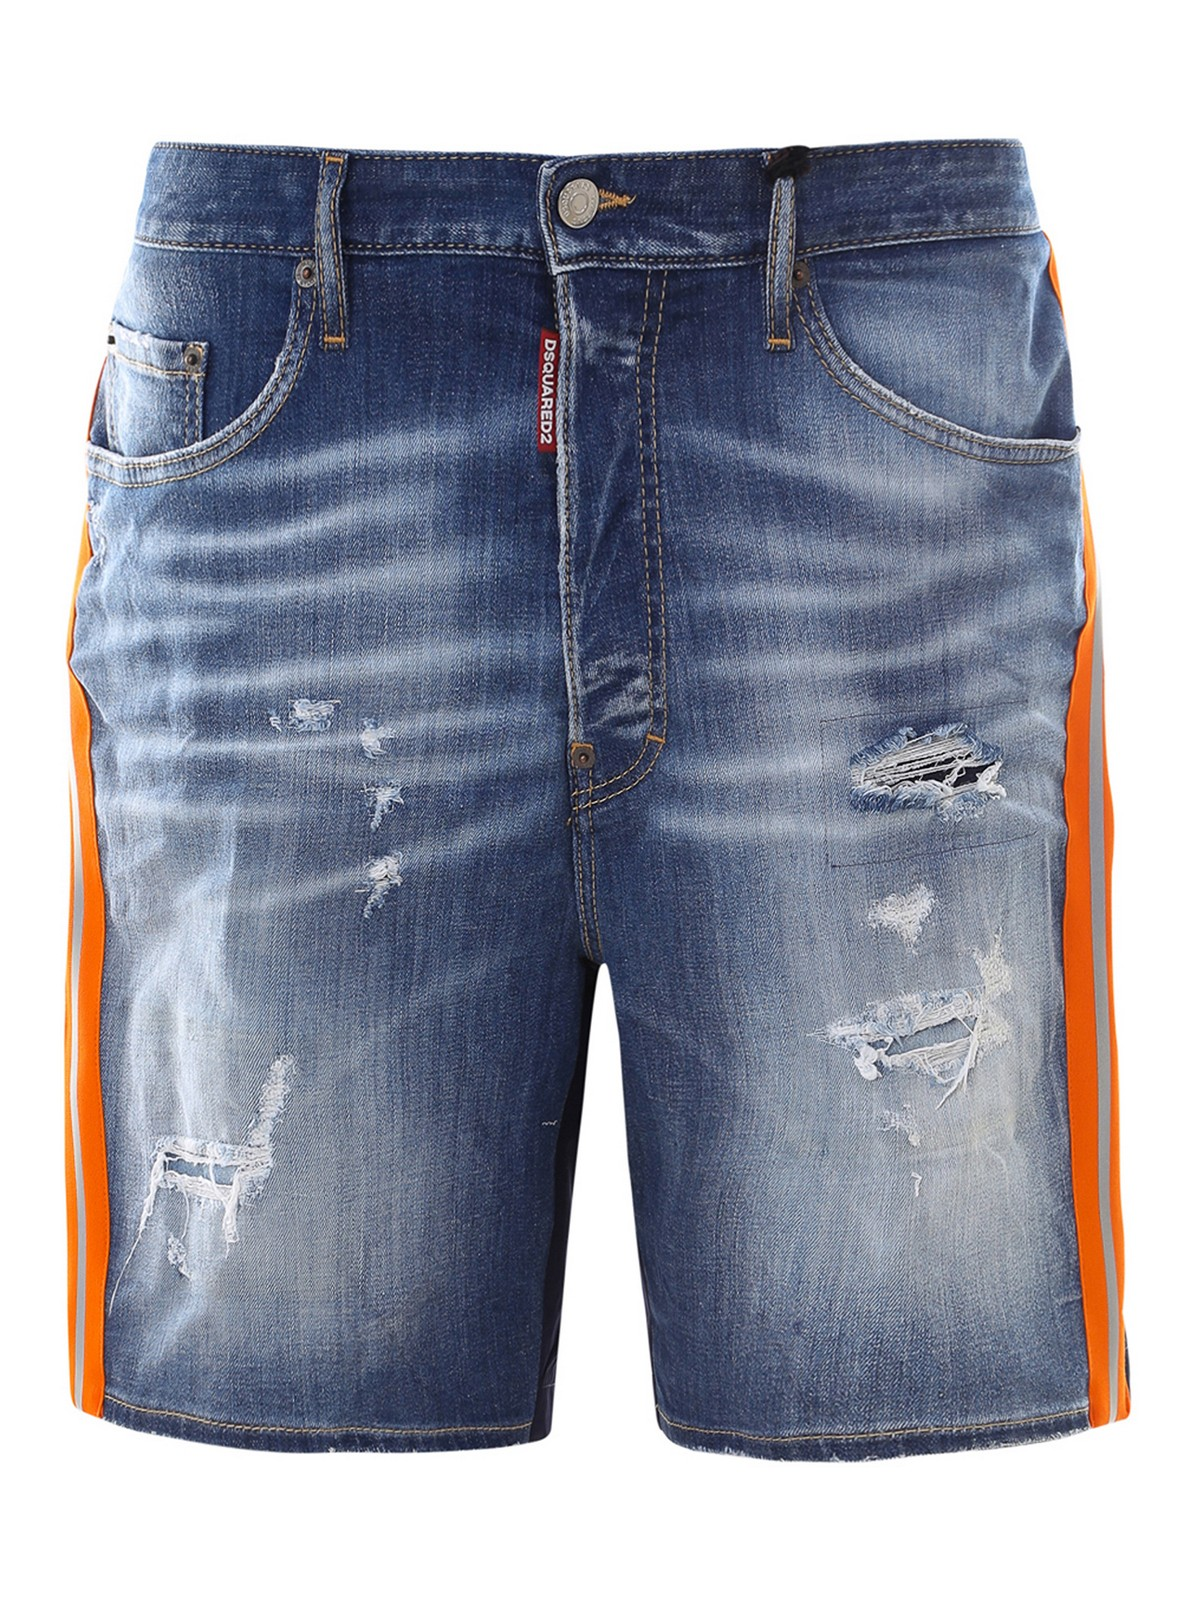 Dsquared2 Denims DENIM AND TECHNICAL FABRIC SHORTS